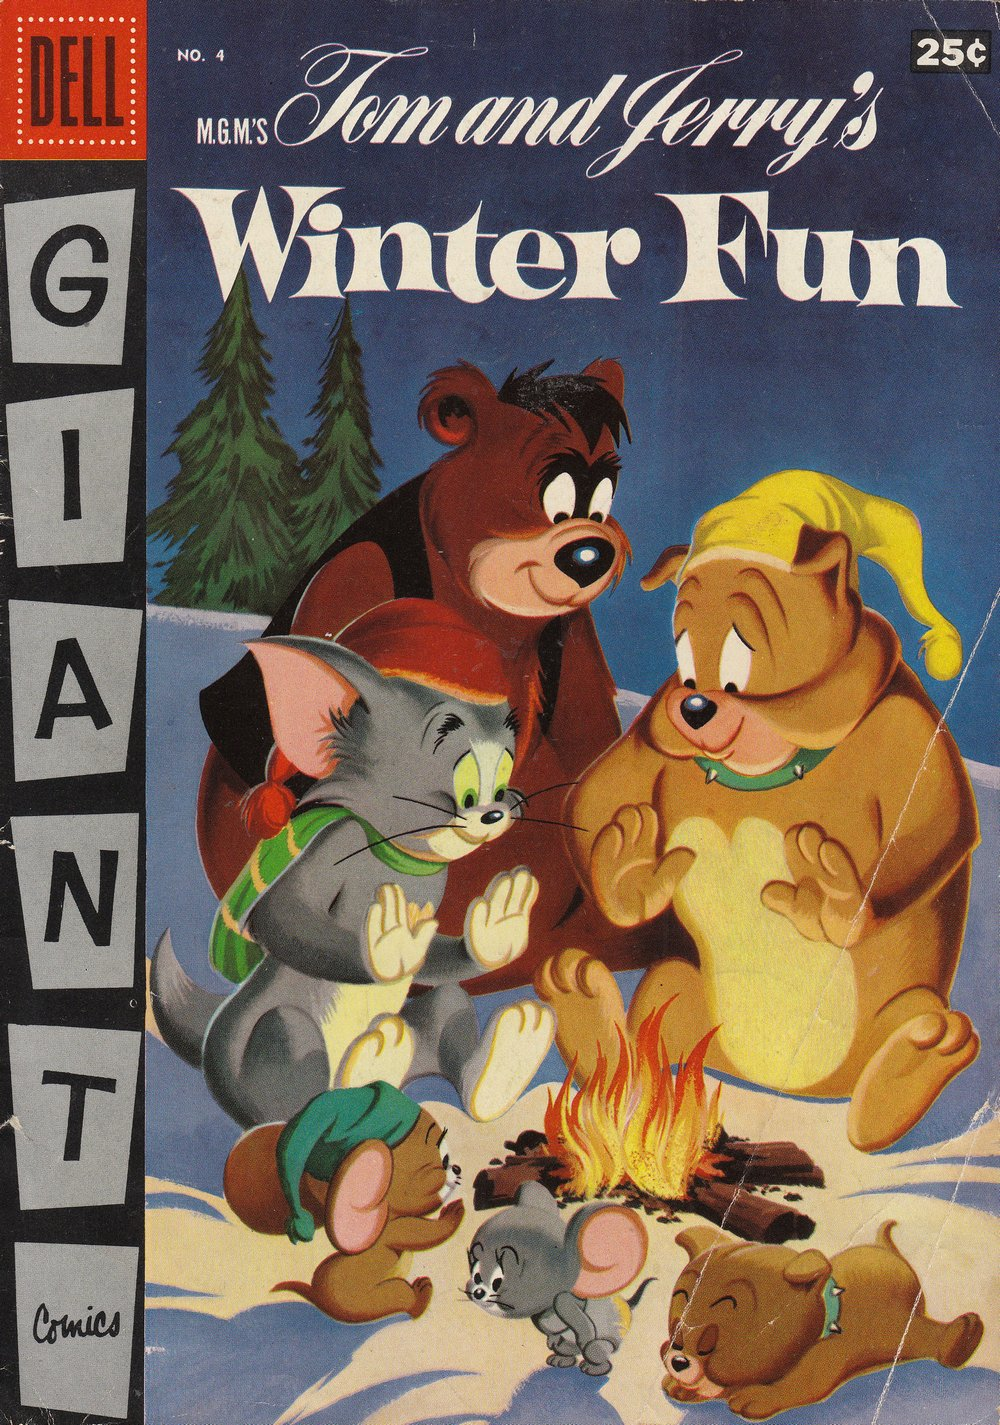 M.G.M.'s Tom and Jerry's Winter Fun issue 4 - Page 1